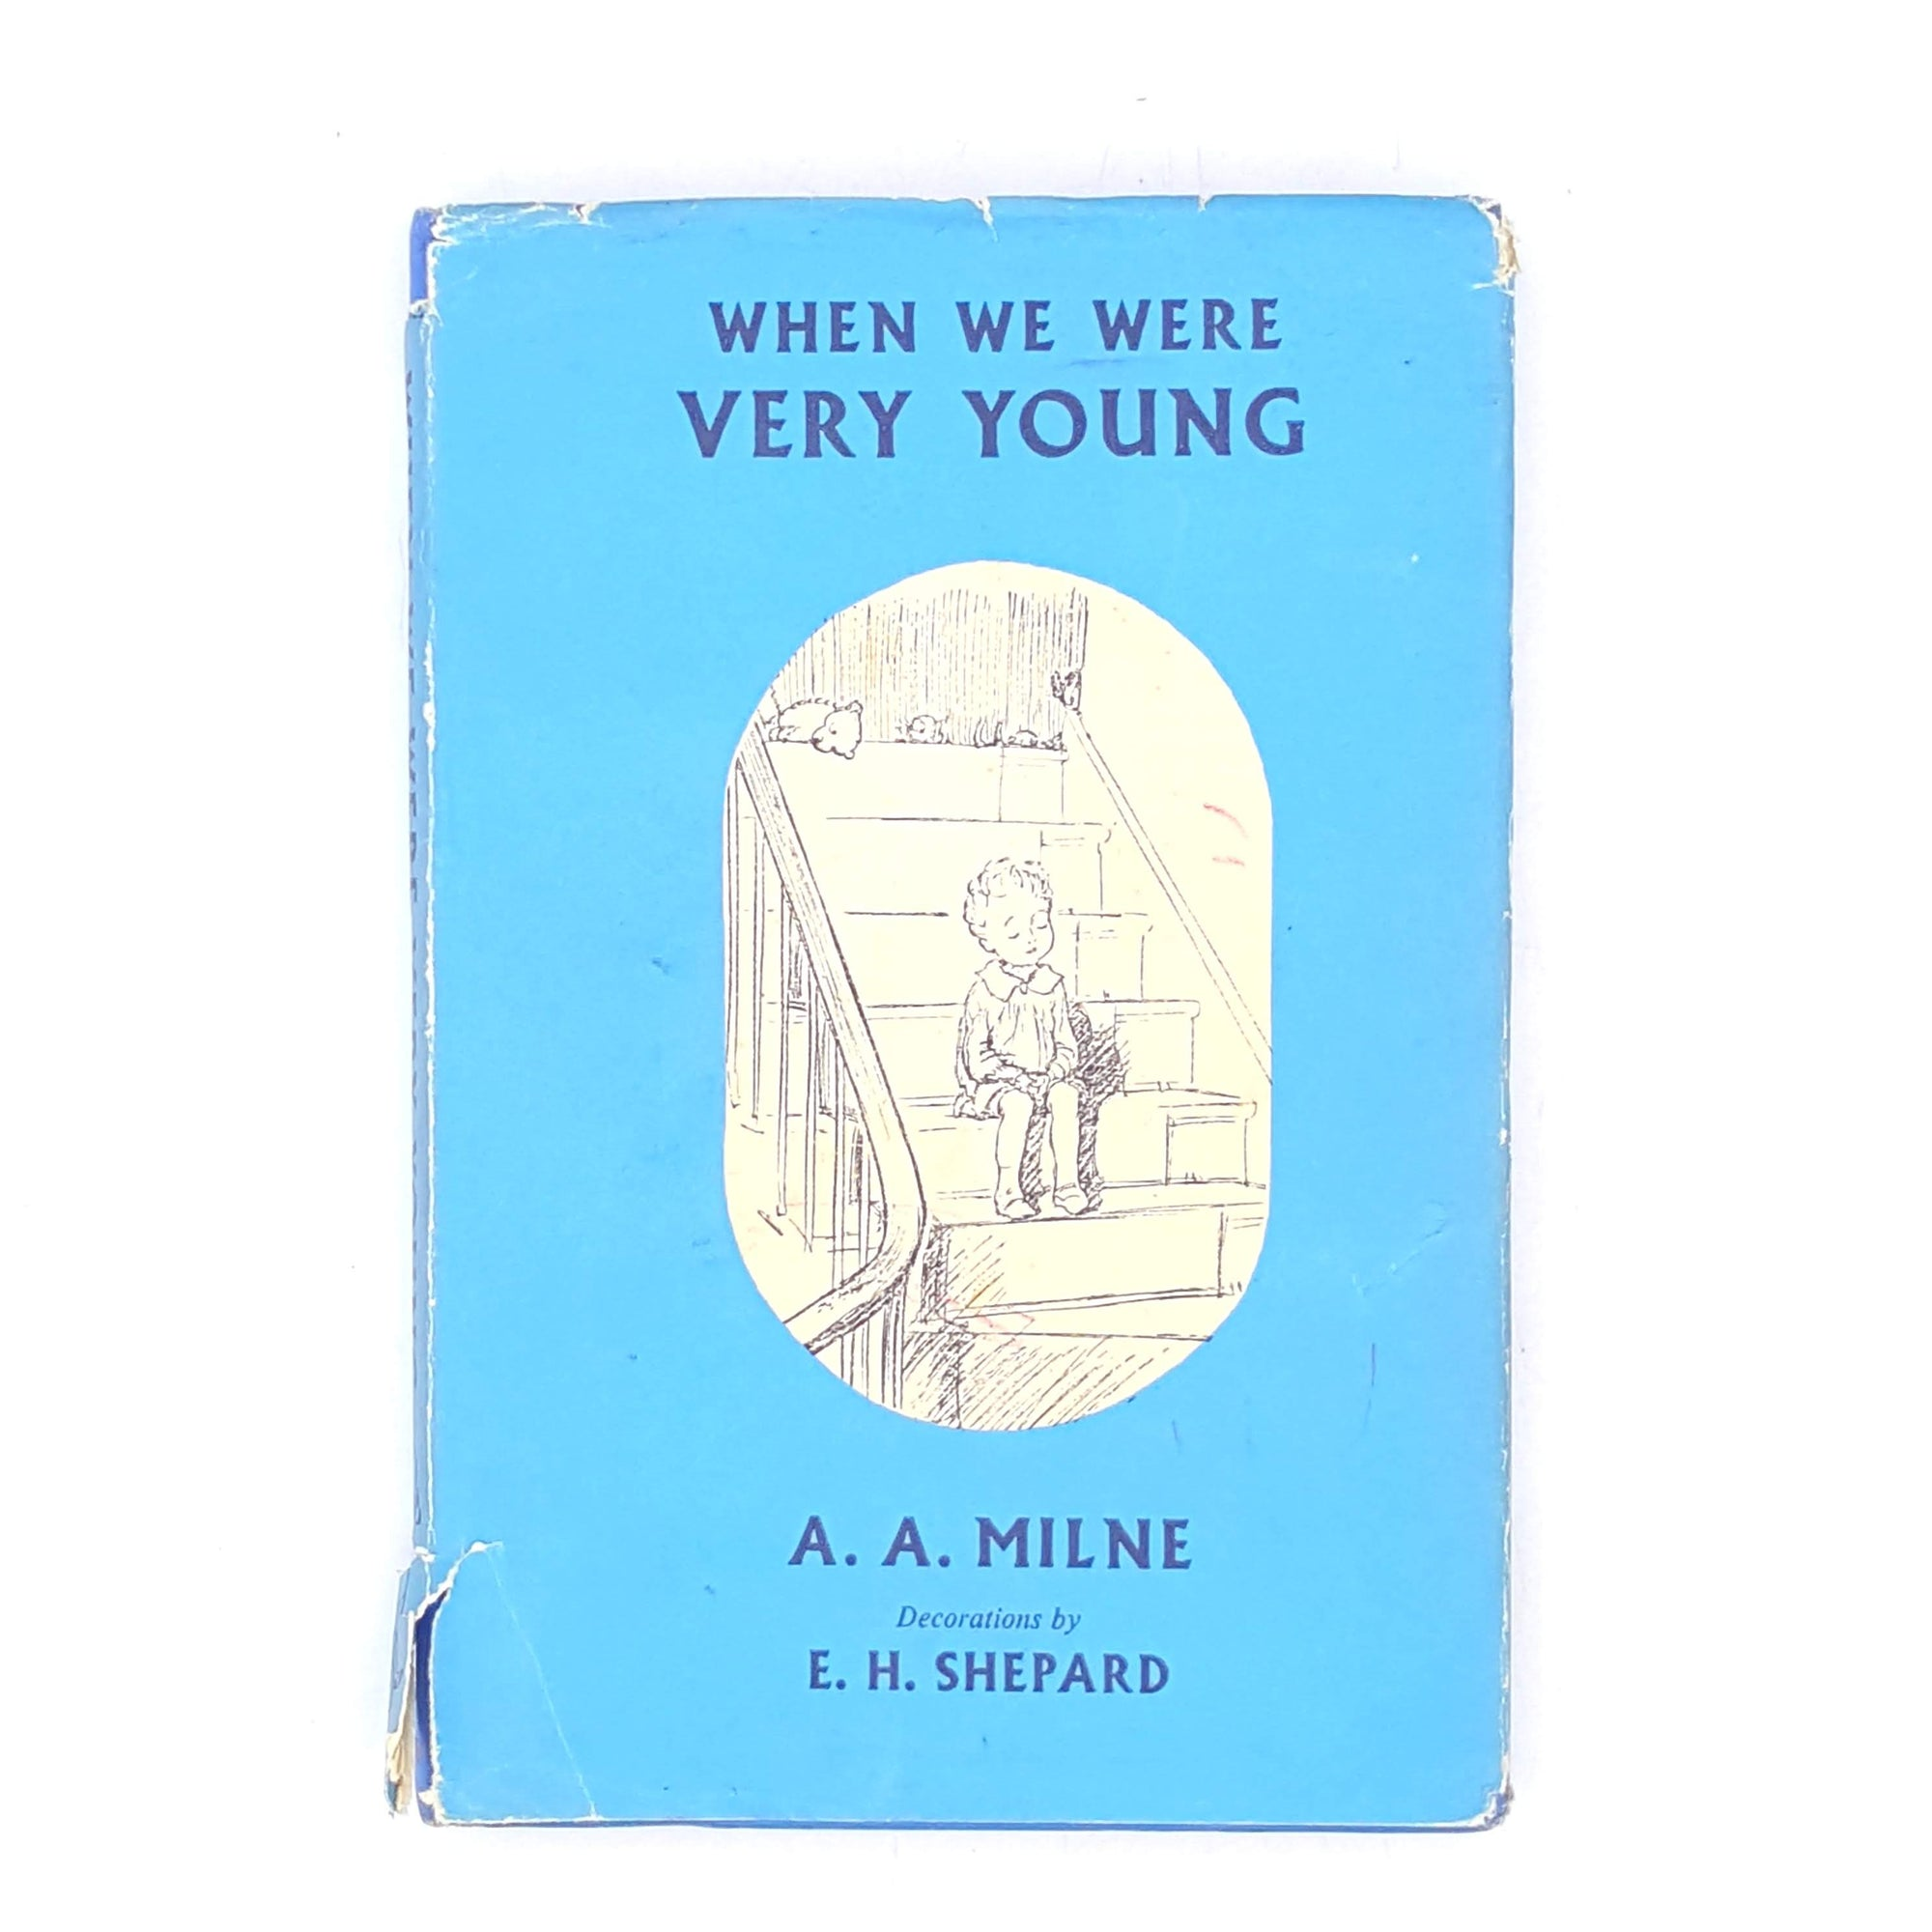 methuen-classics-1960-old-country-house-library-blue-vintage-winnie-poetry-thrift-aamilne-books-